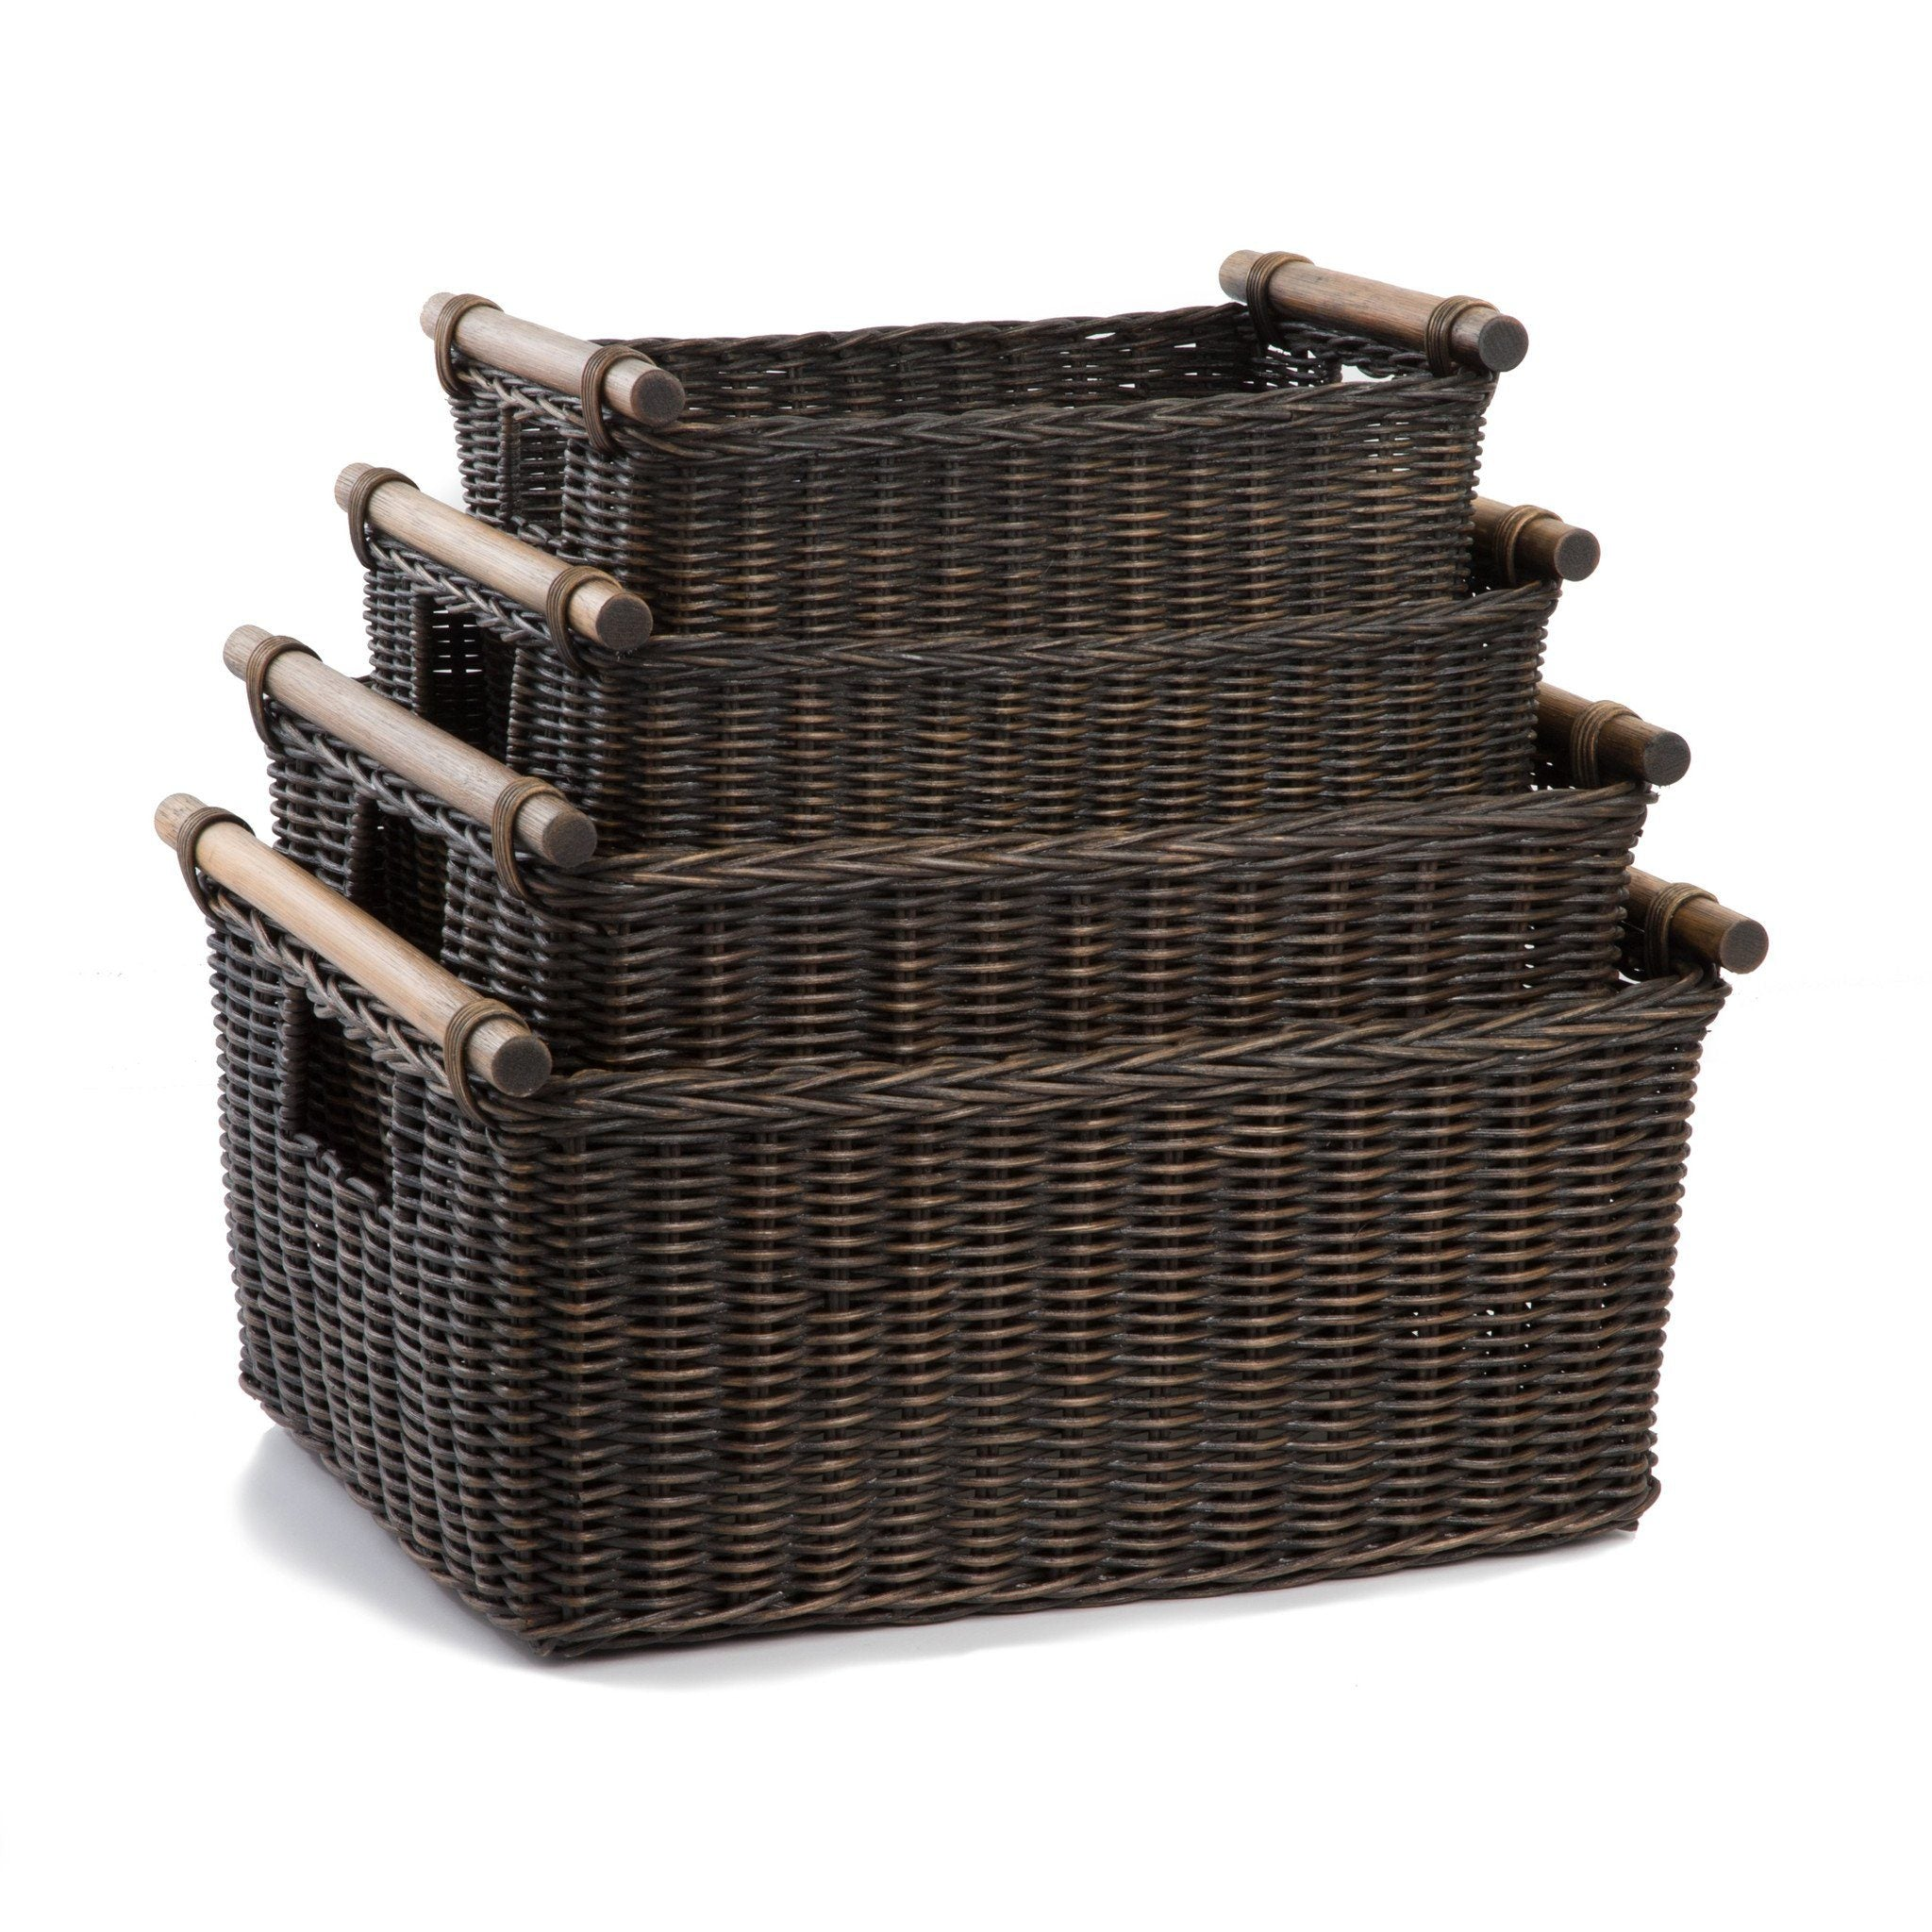 Wicker Storage Baskets for Shelves & Closets - The Basket Lady